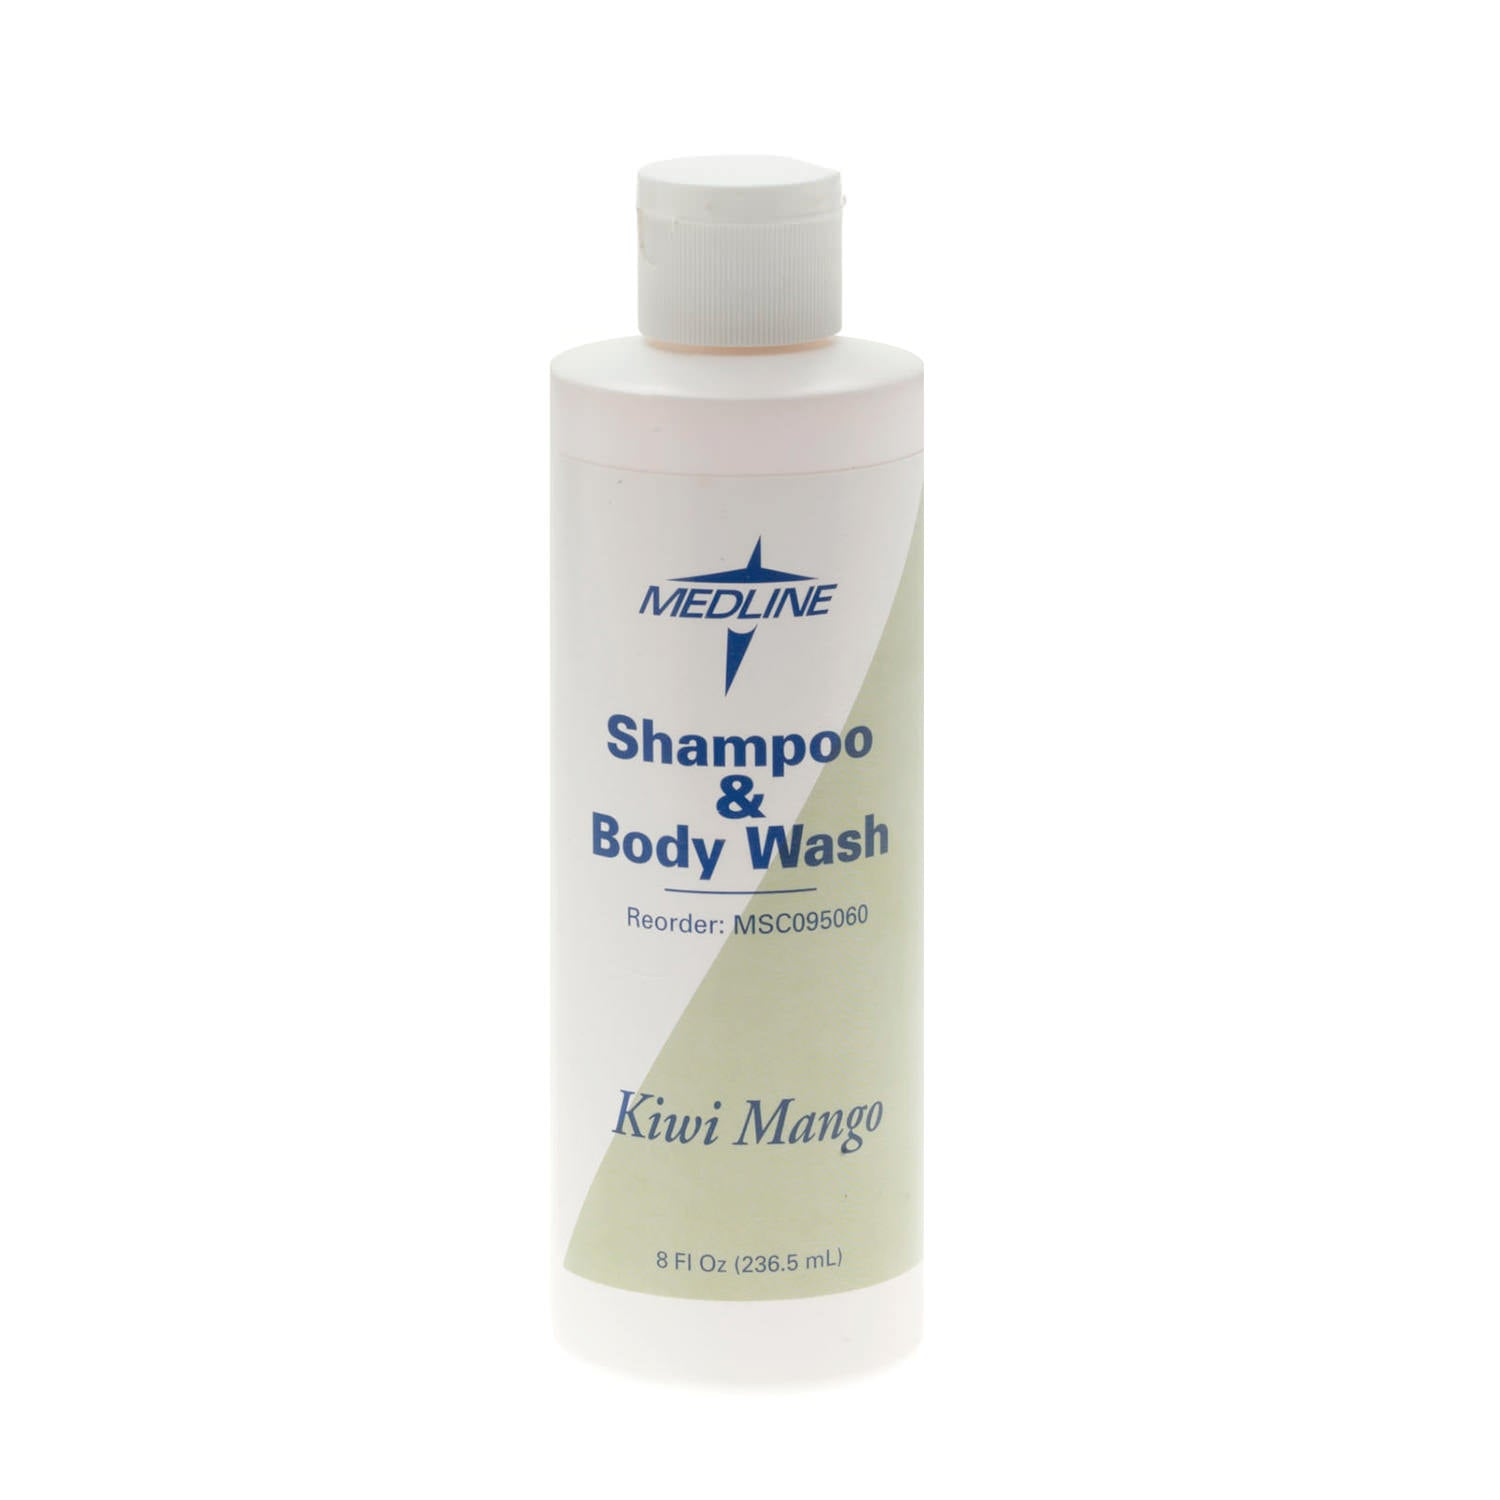 Fragranced Shampoo & Body Wash - 8 oz.